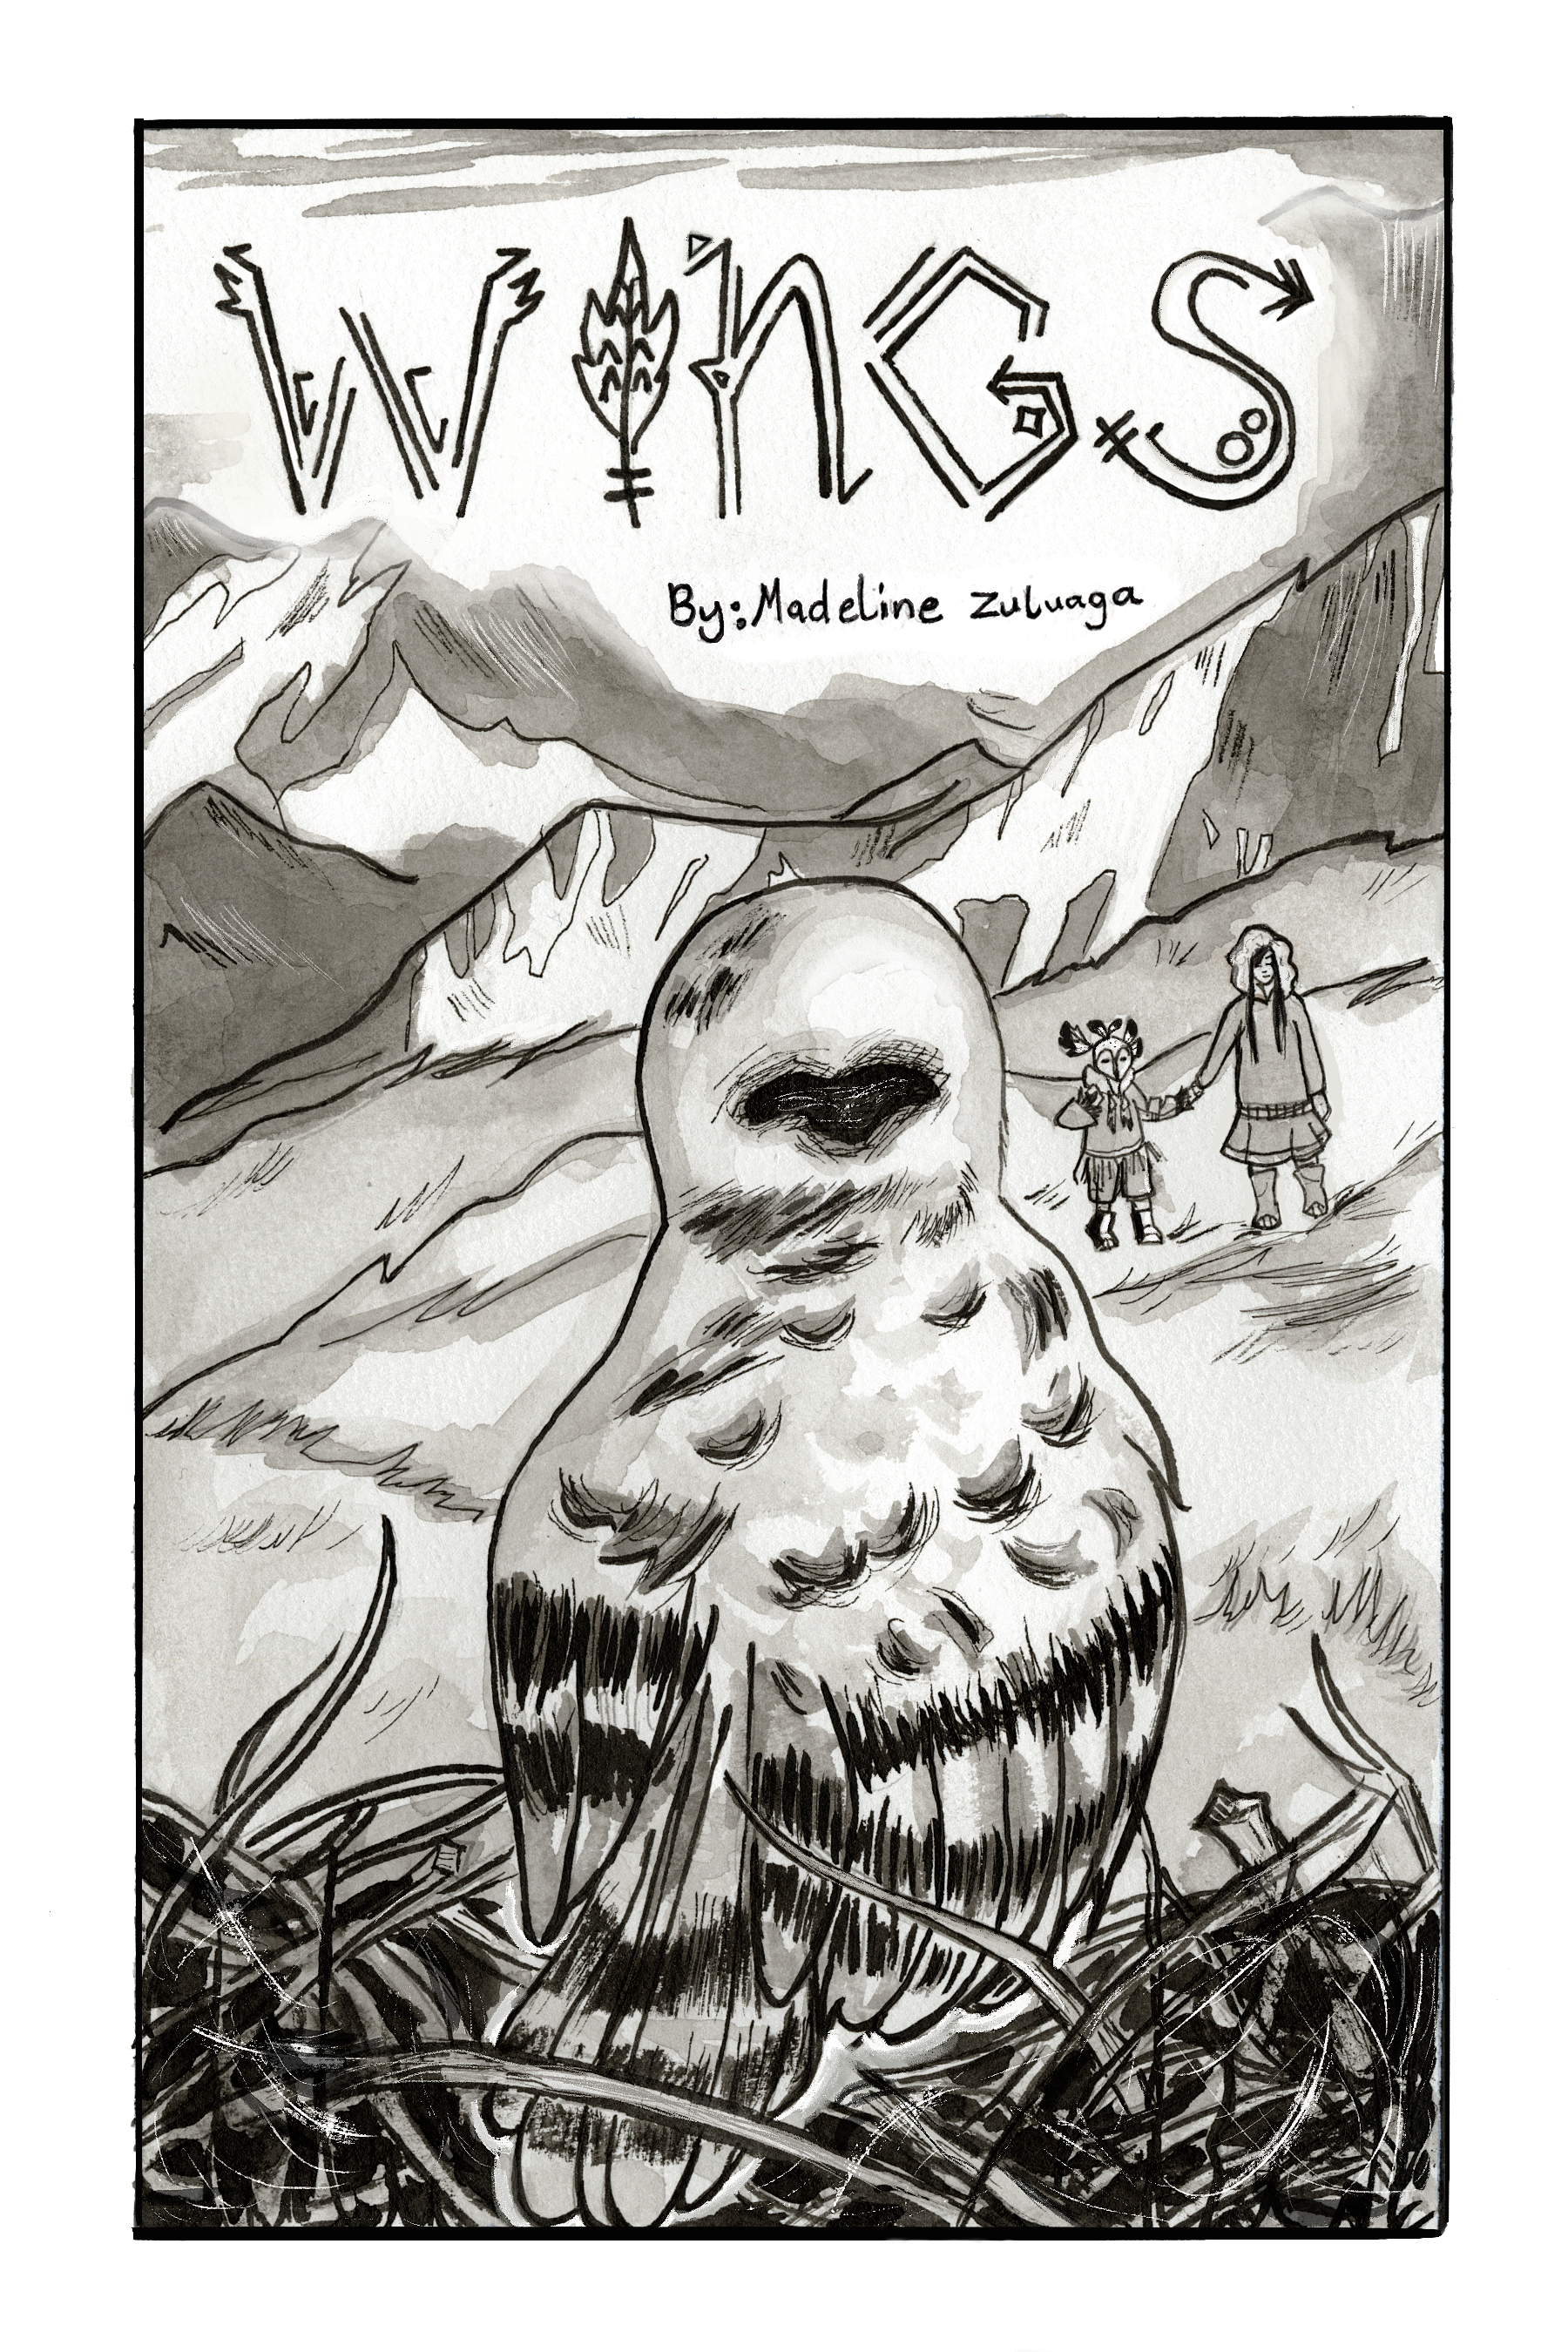 edited-2nd-pg-of-wings-comic---Madeline-zuluaga-rescued-version.png